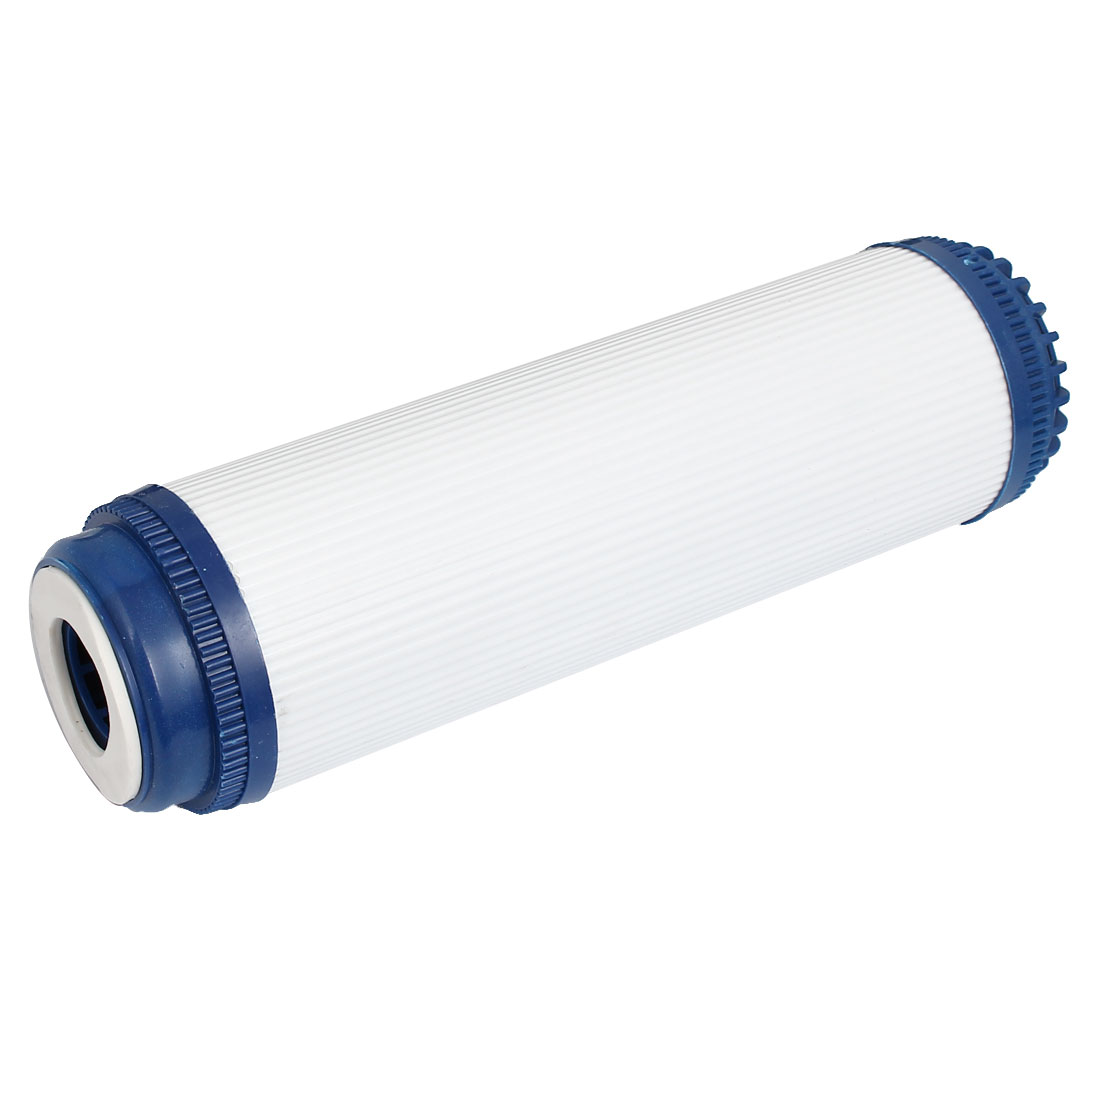 50m Filtration Carbon Inline Reverse Osmosis Filter for Refrigerator